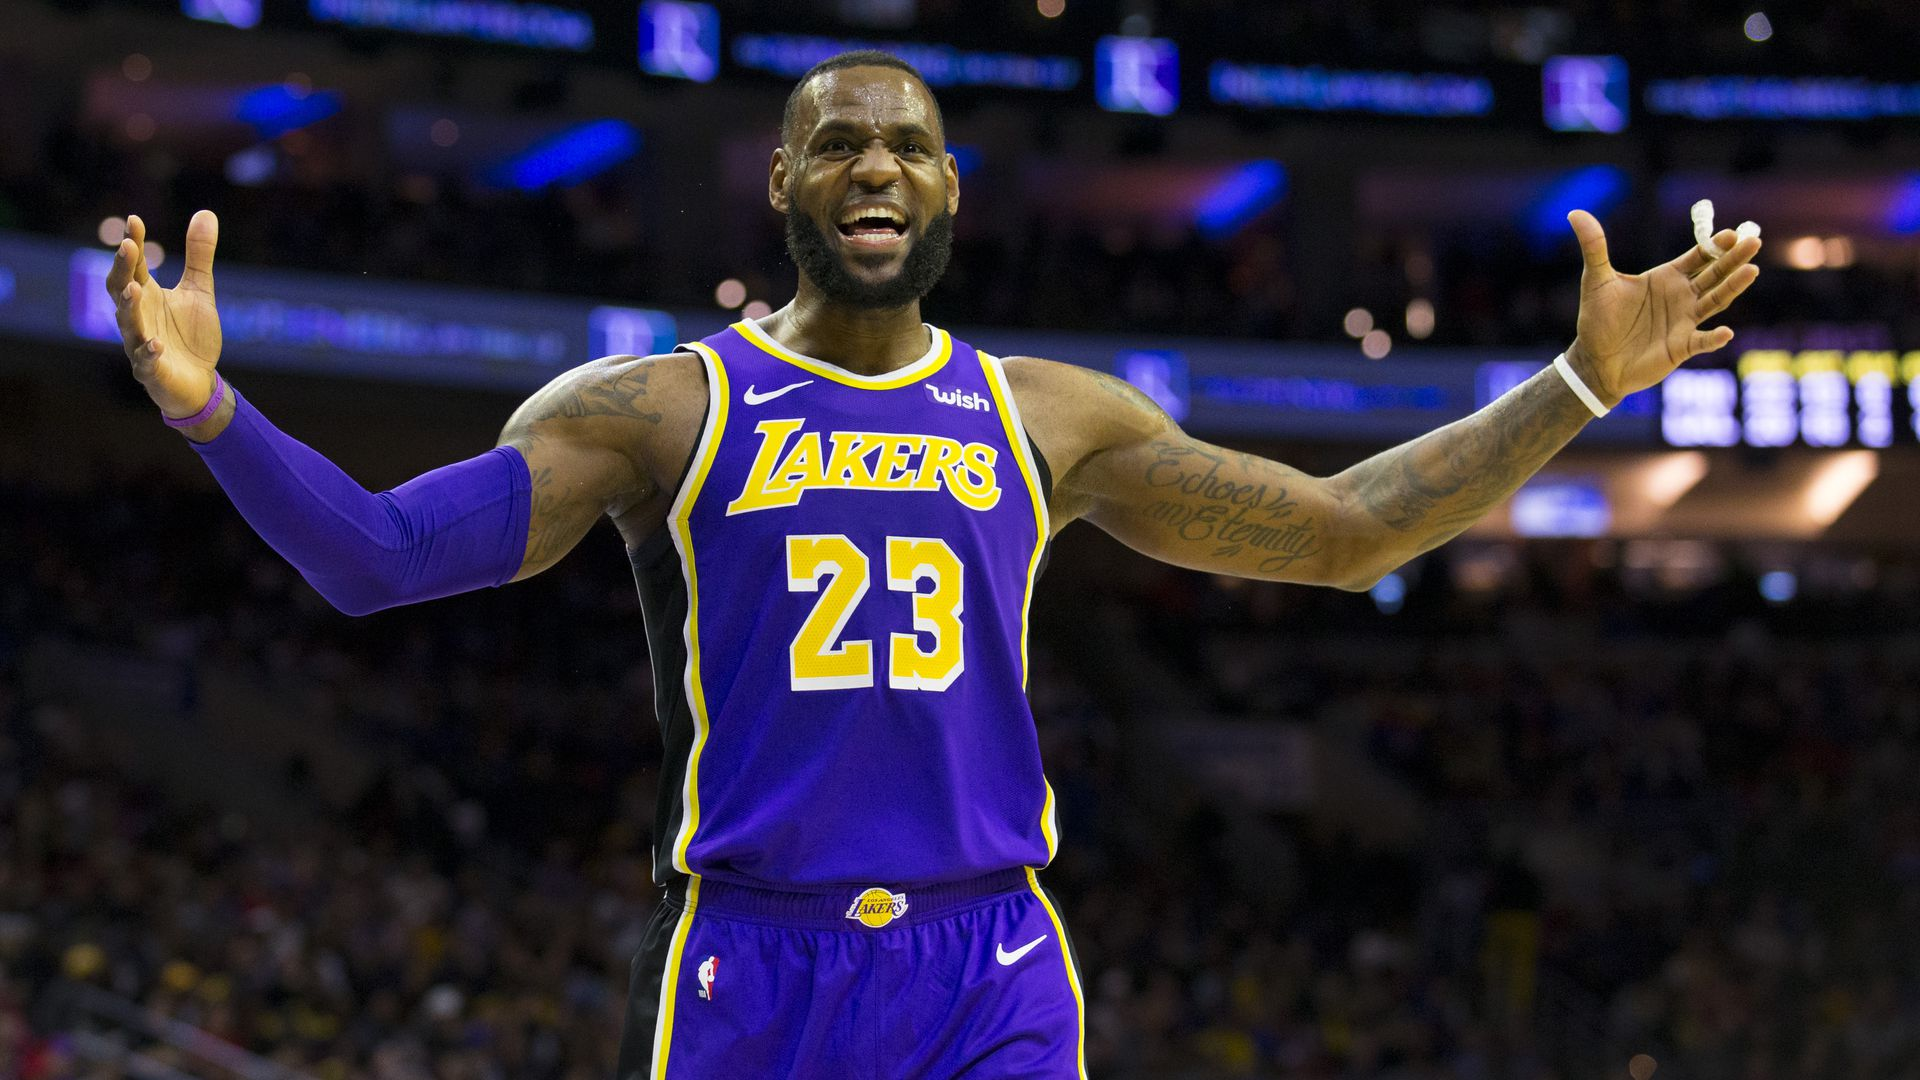 743dcf5204d The LeBron effect  NBA stars lap others on social media - Axios